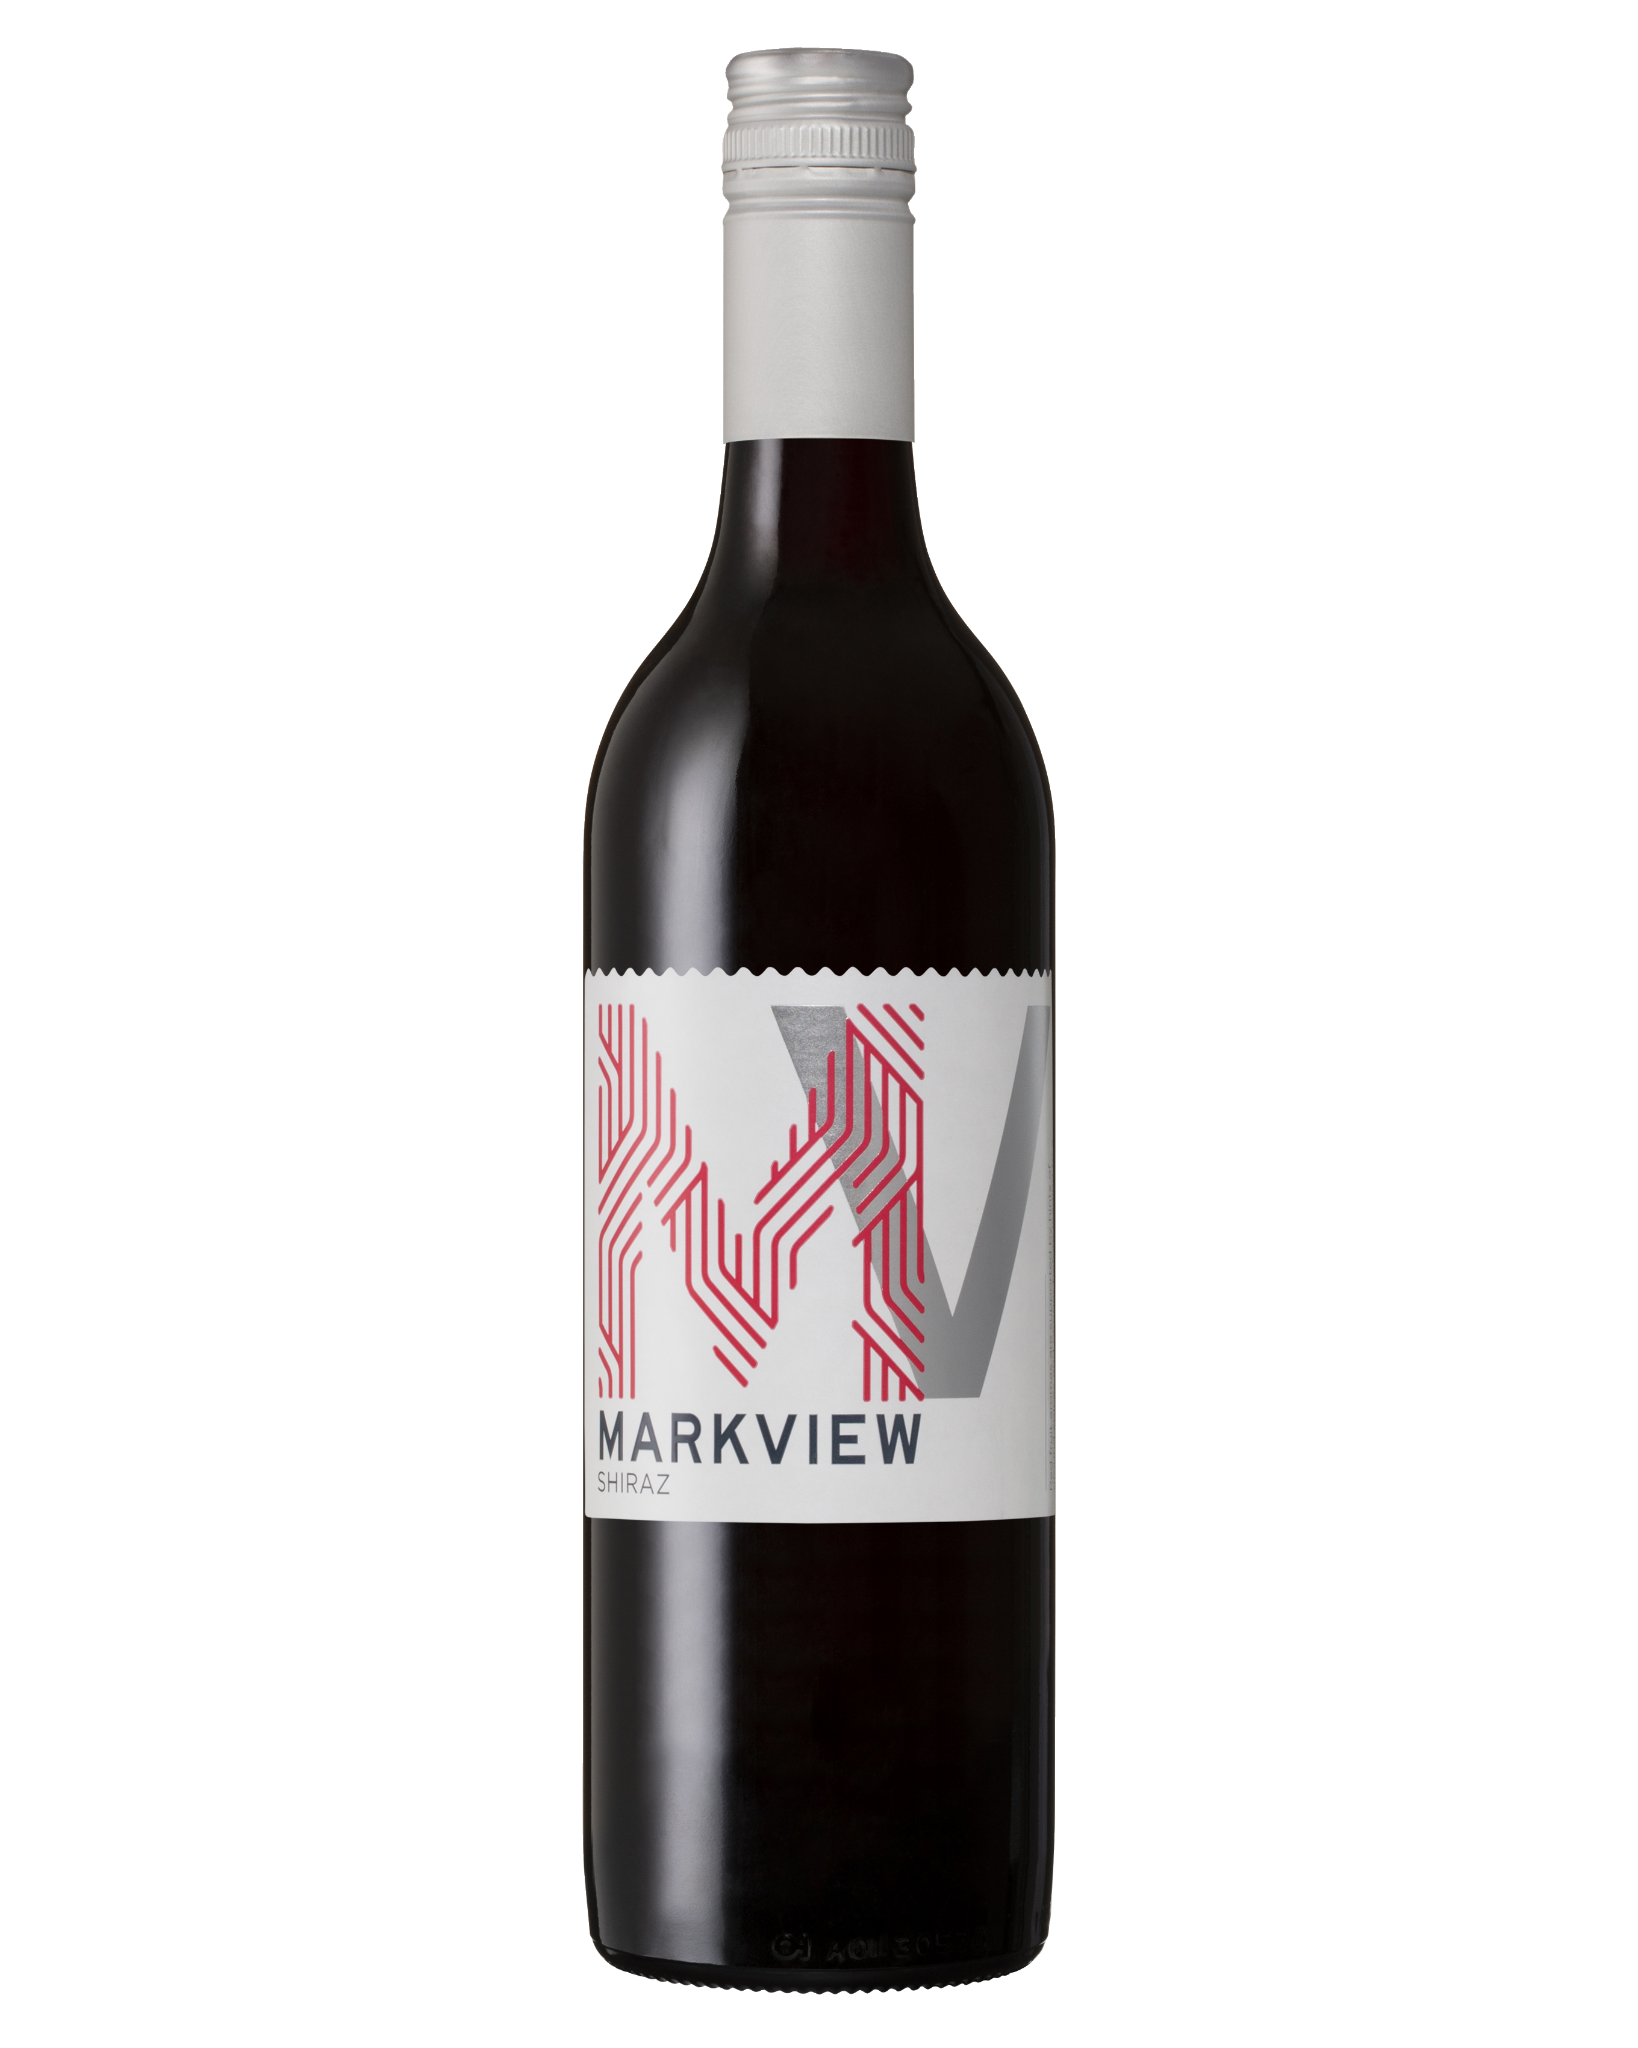 Vang Úc McWilliam's Markview Shiraz